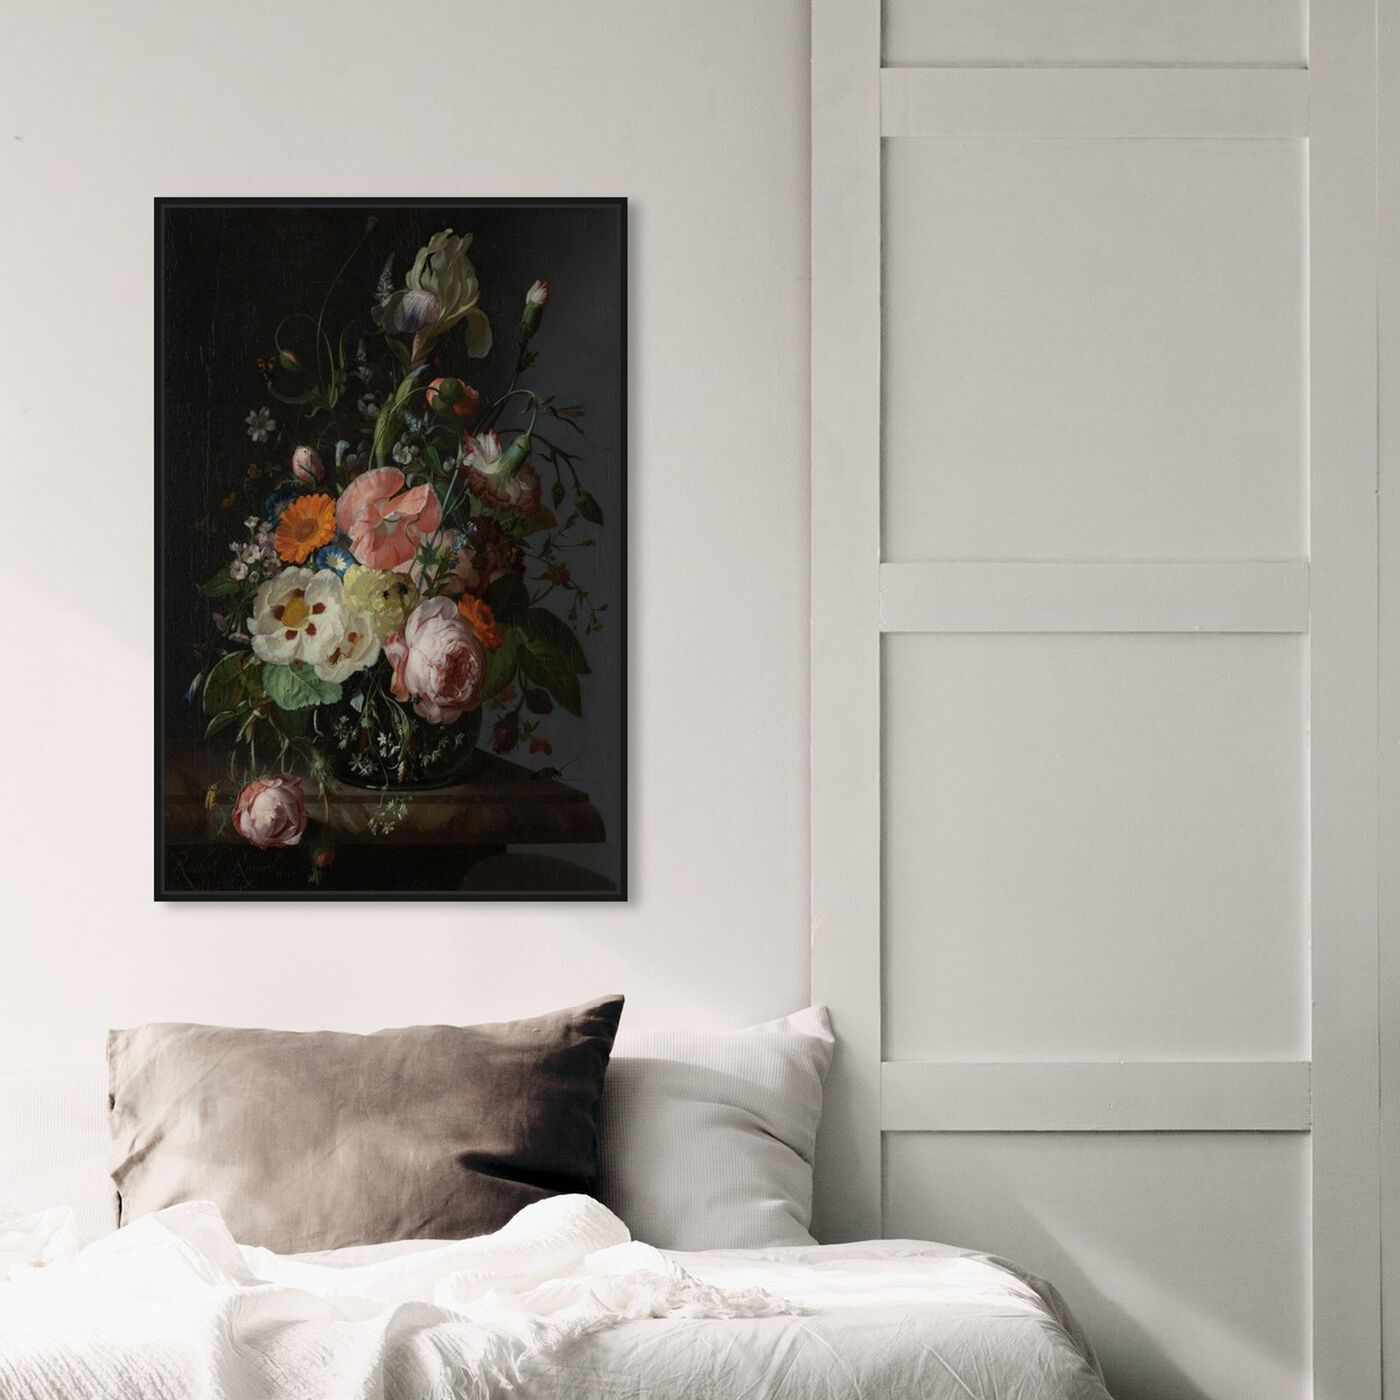 Hanging view of Flower Arrangement IV - The Art Cabinet featuring classic and figurative and french décor art.